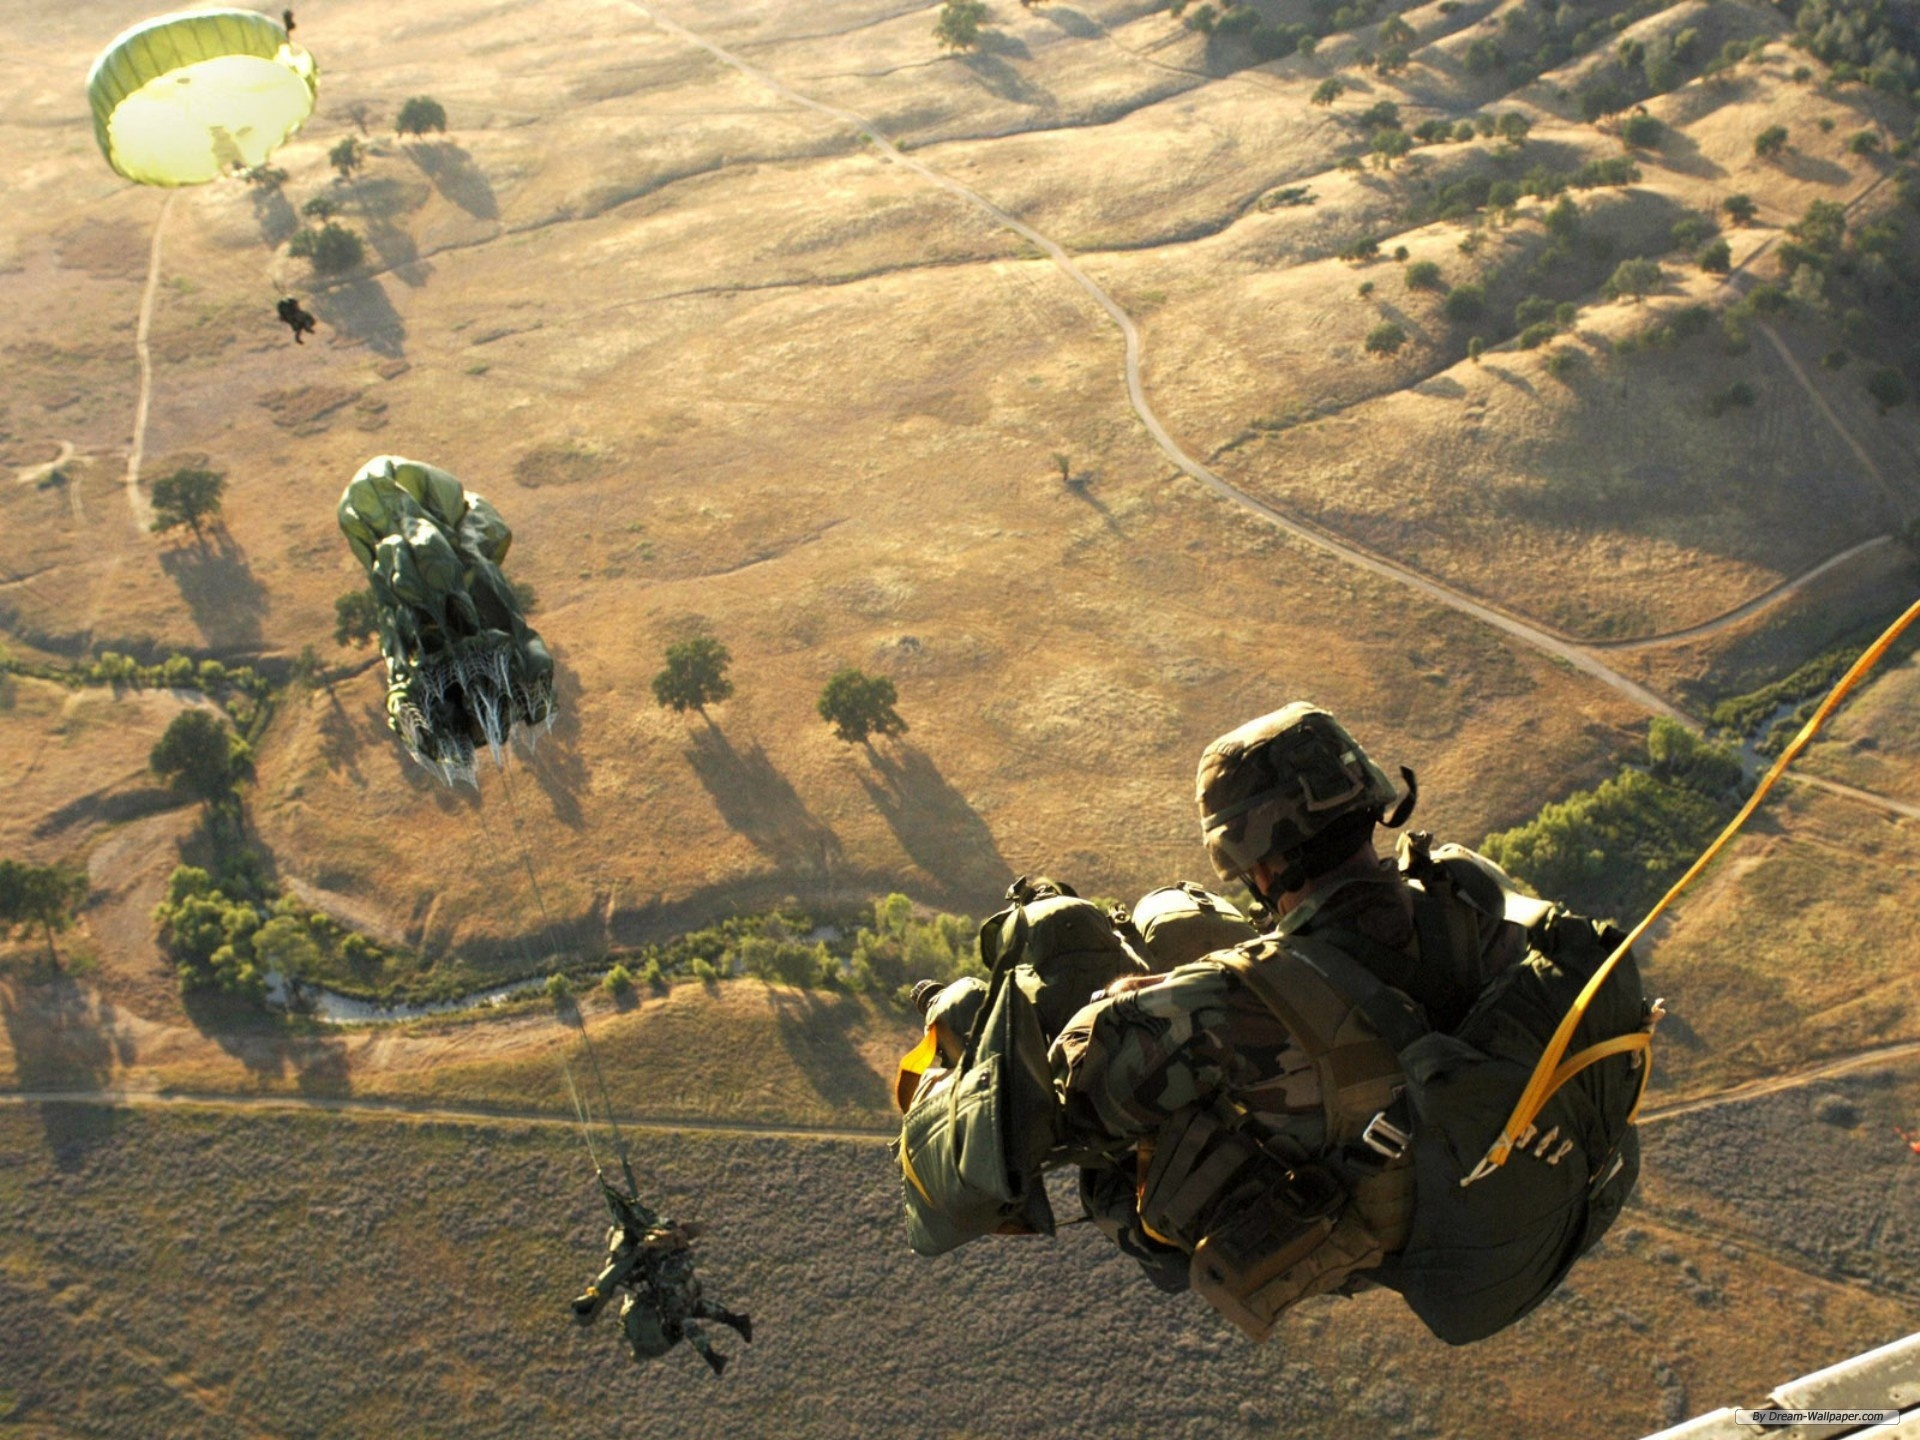 Airborne   hebusorg   High Definition Wallpapers   HD wallpapers 1920x1440